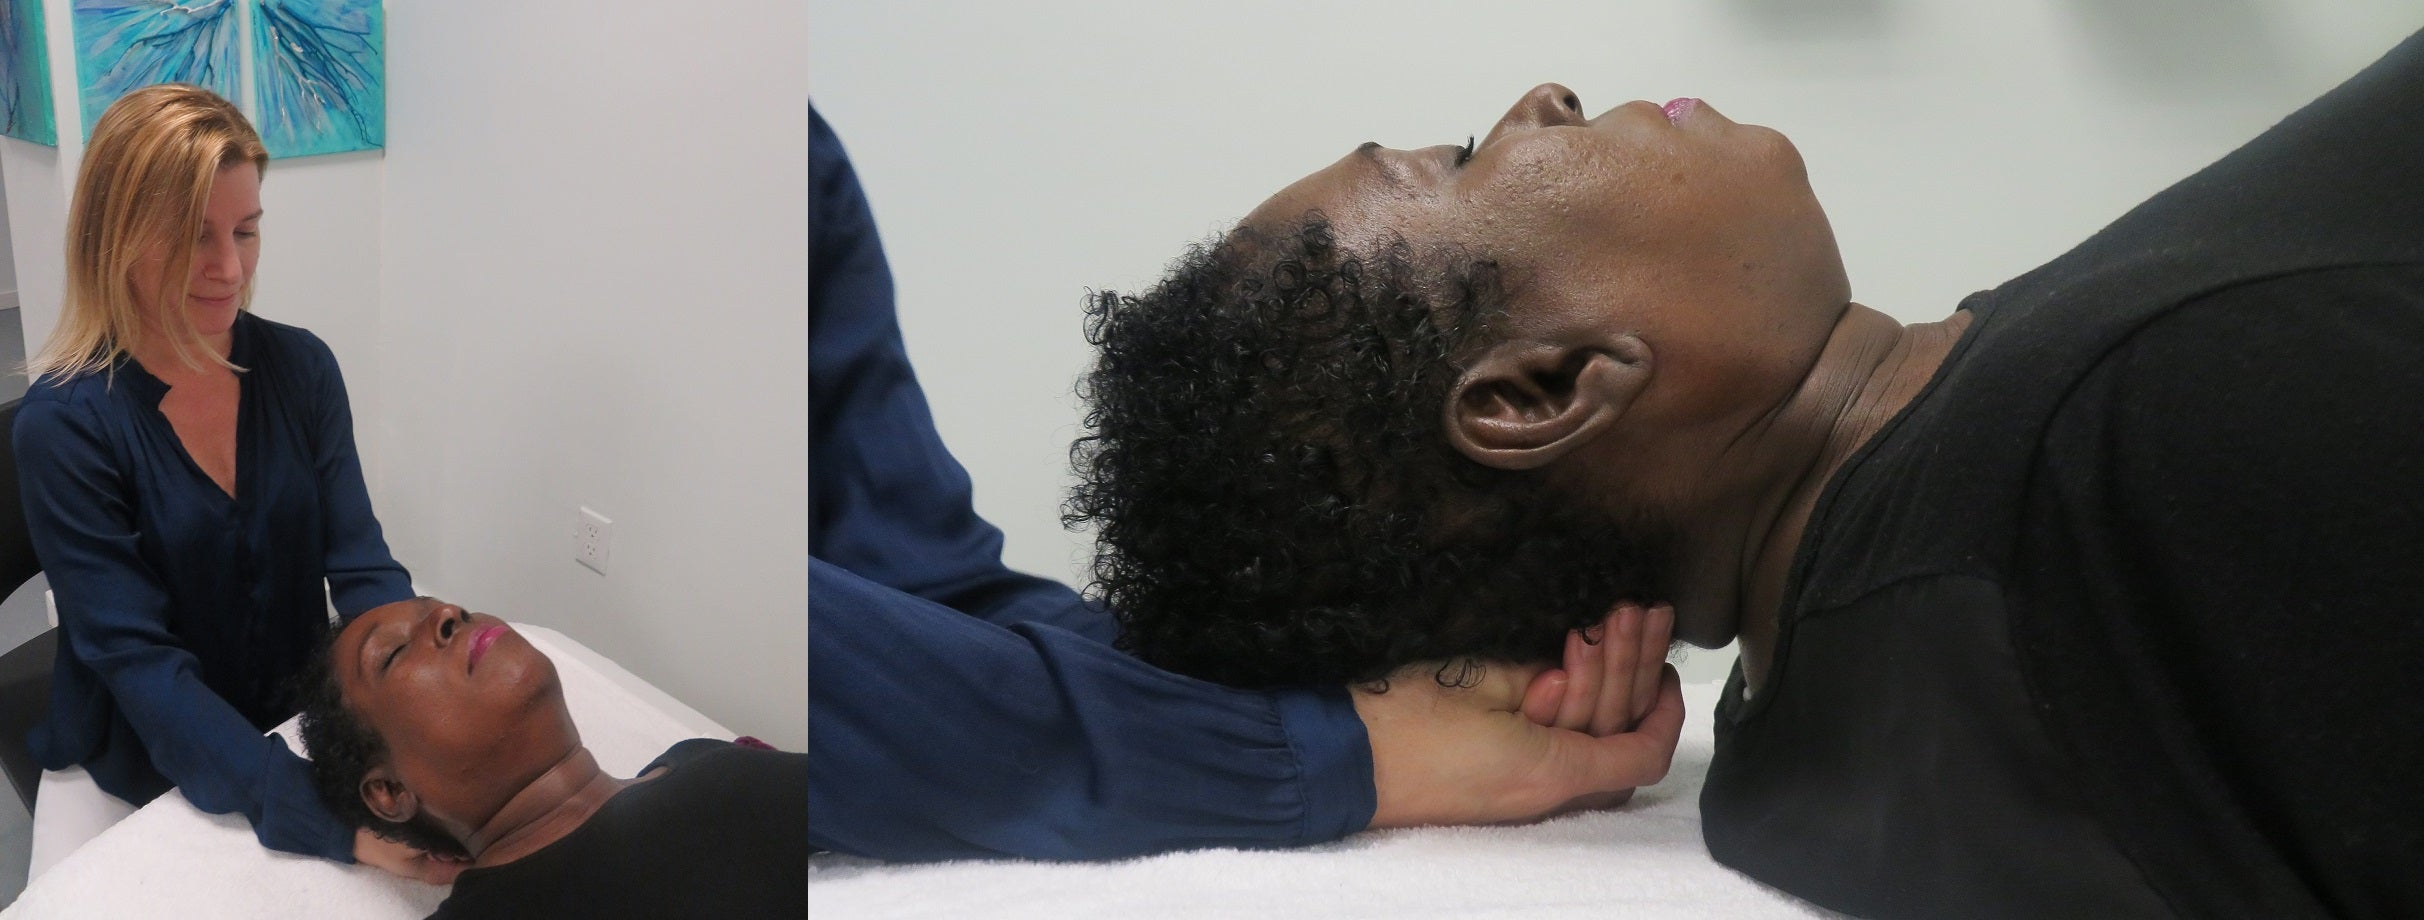 6 CE Craniosacral Connective Tissue Release Basics